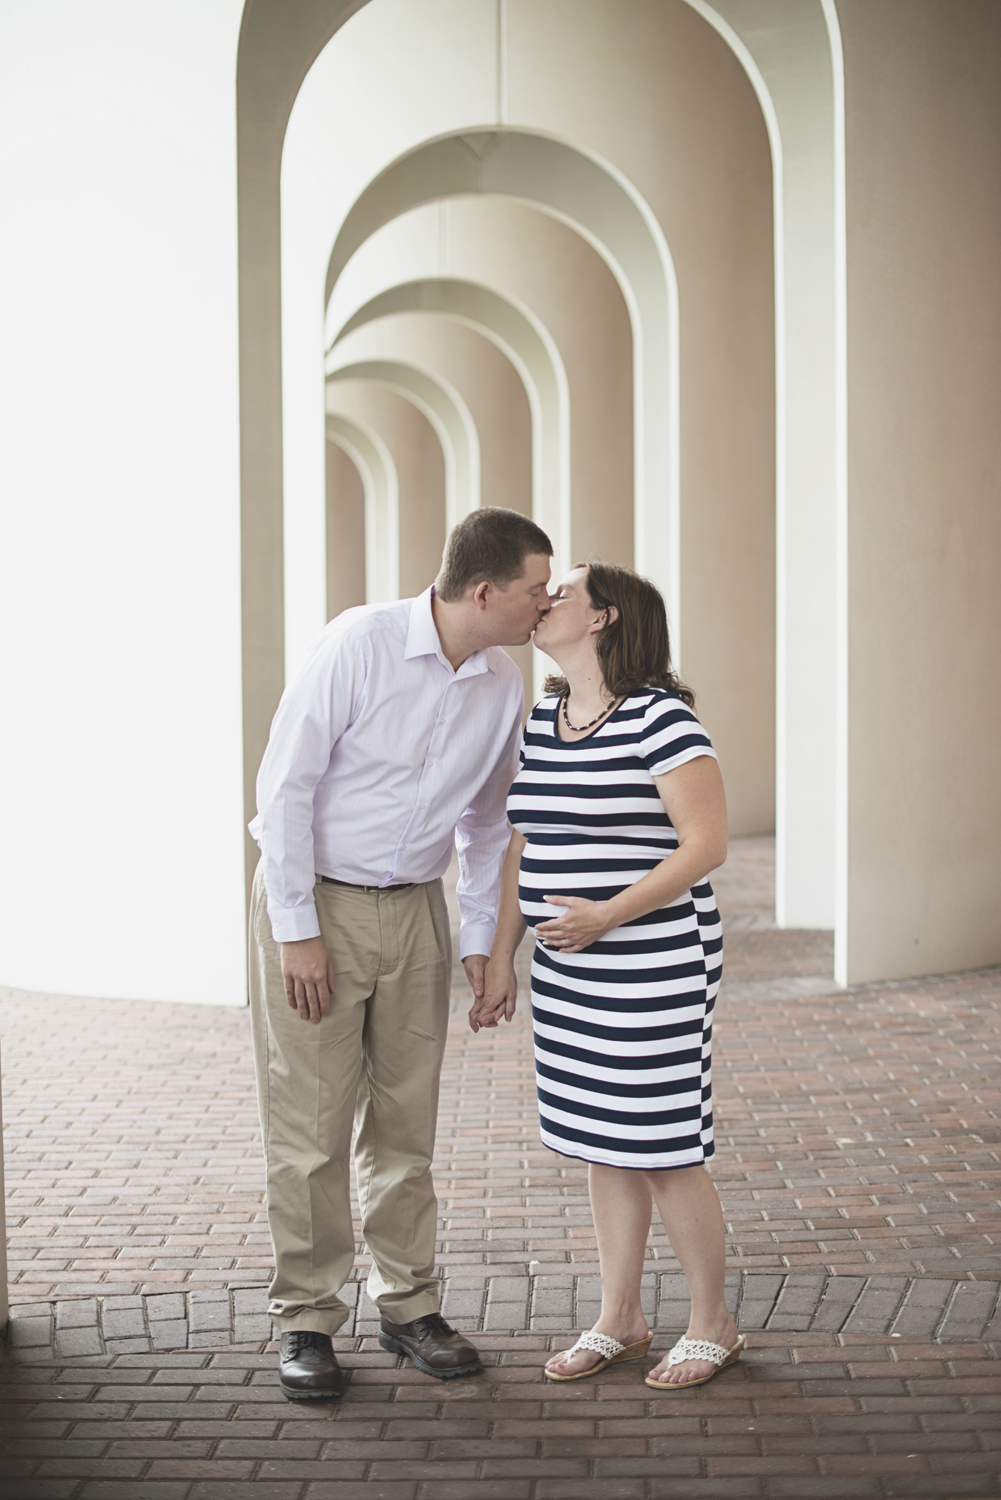 Christopher Newport Maternity Photos | Newport News, Virginia | Blue, tan, and white maternity outfit ideas